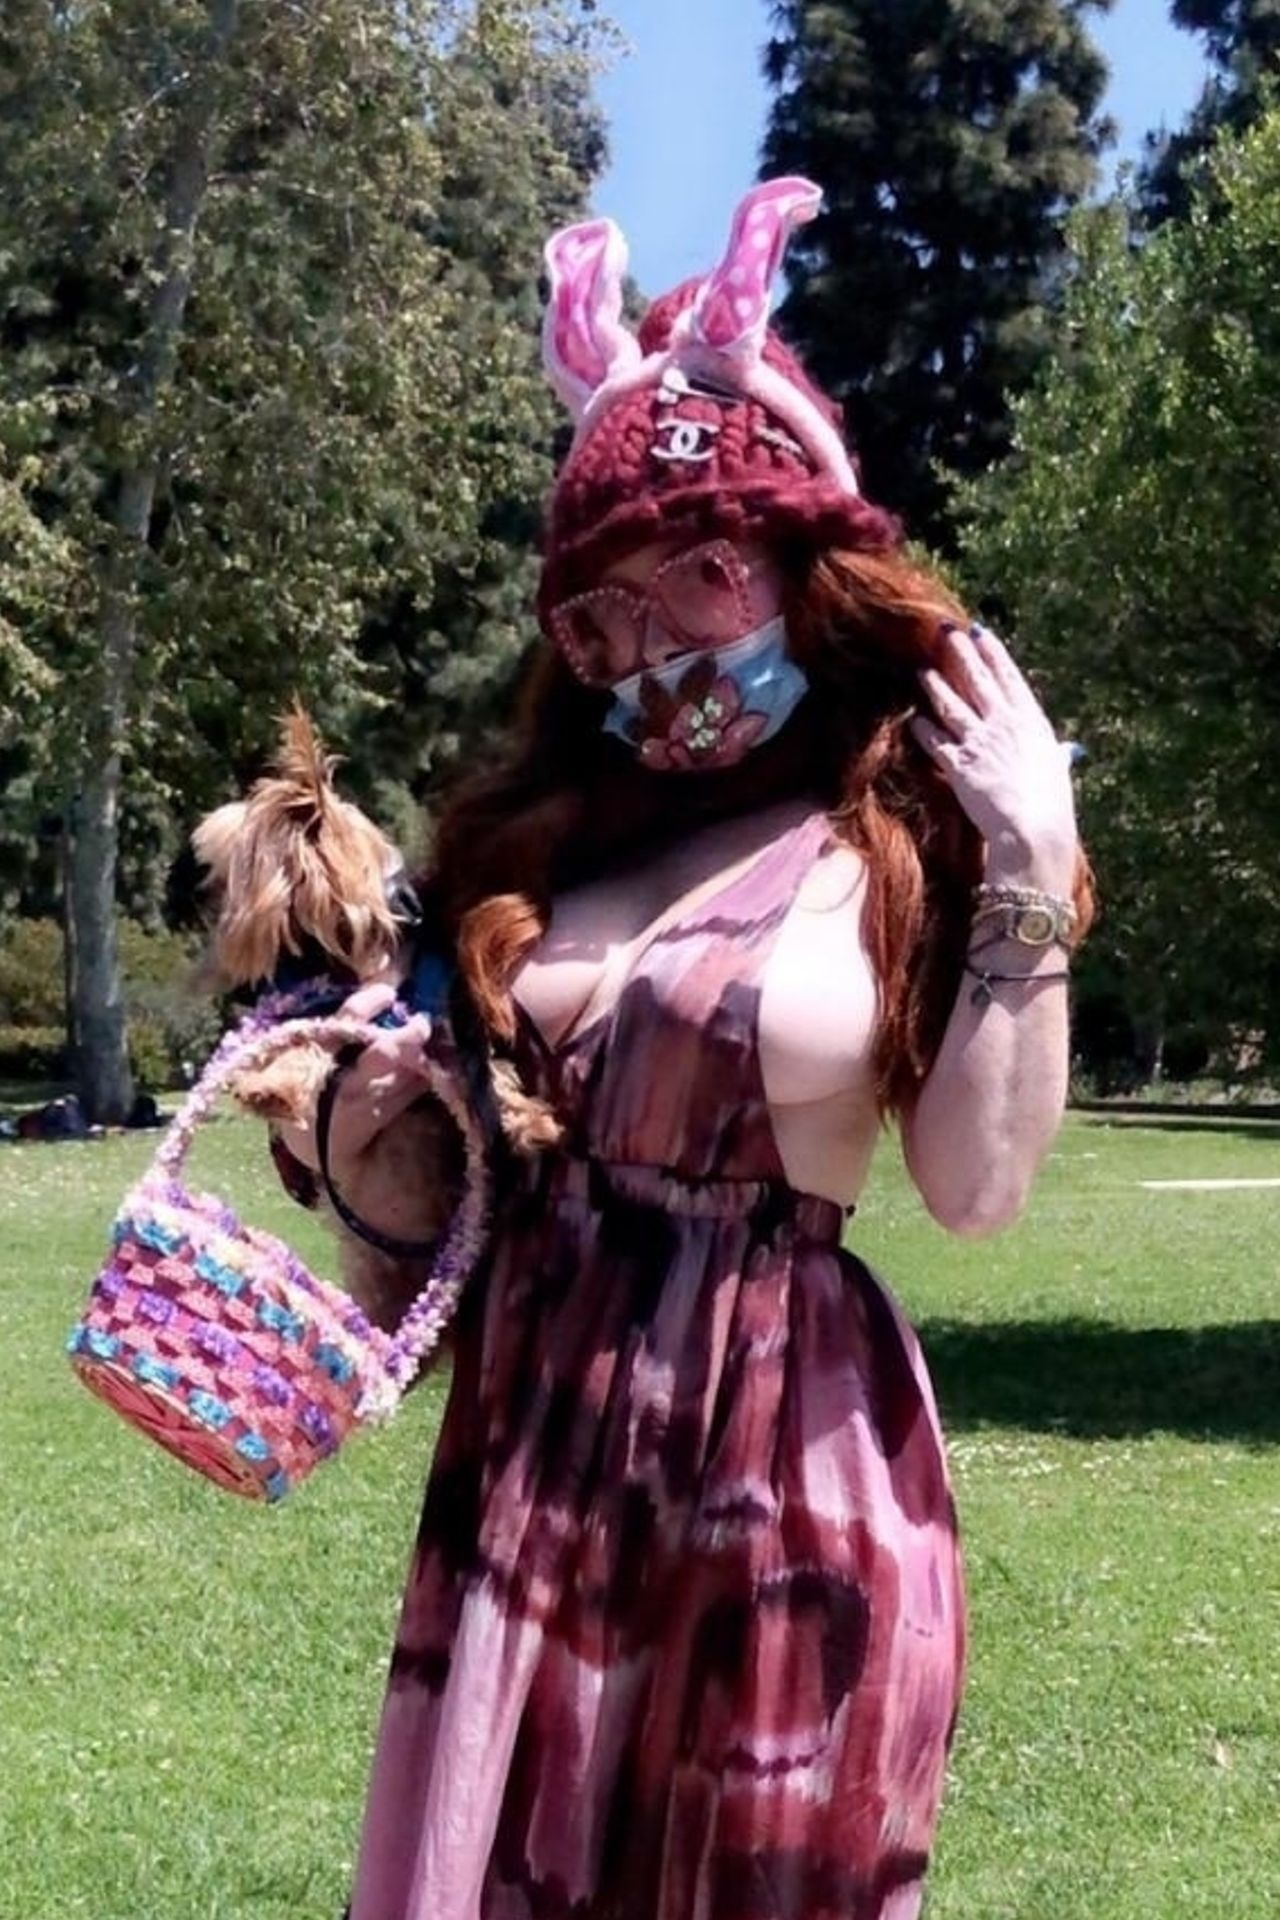 phoebe-price-wears-a-face-mask-gets-ready-to-celebrate-easter-in-west-hollywood-04-11-2020-30